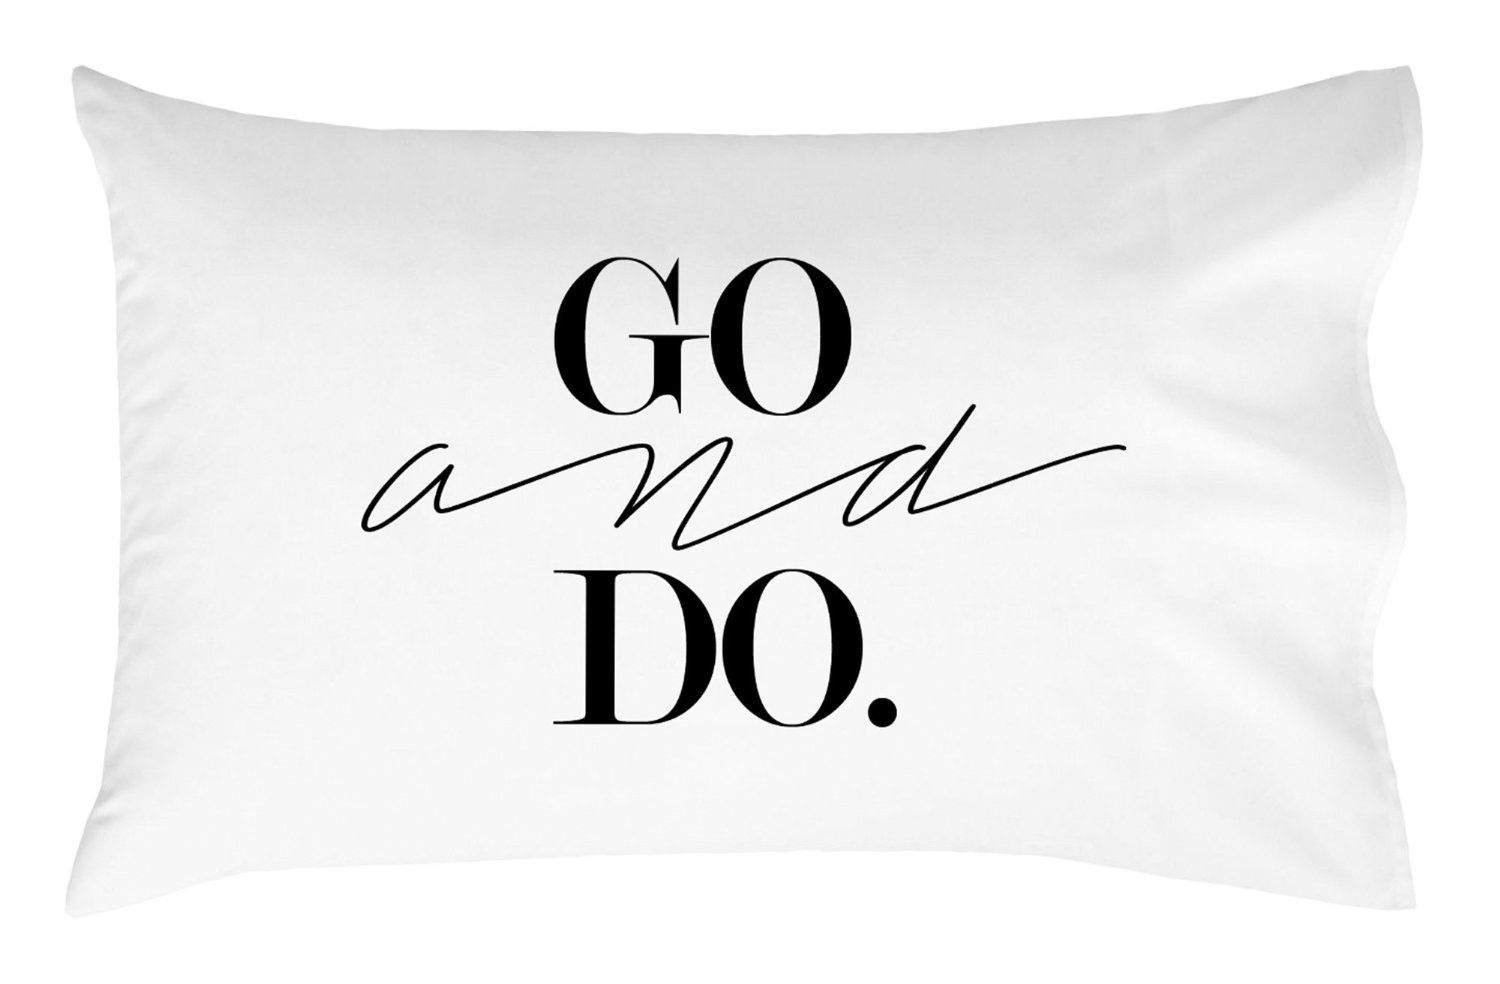 Go and Do Pillow Case Graduation Gifts for Her or Him Dorm Room Bedding Pillowcase Missionary Gift College Dorm Room Accessories